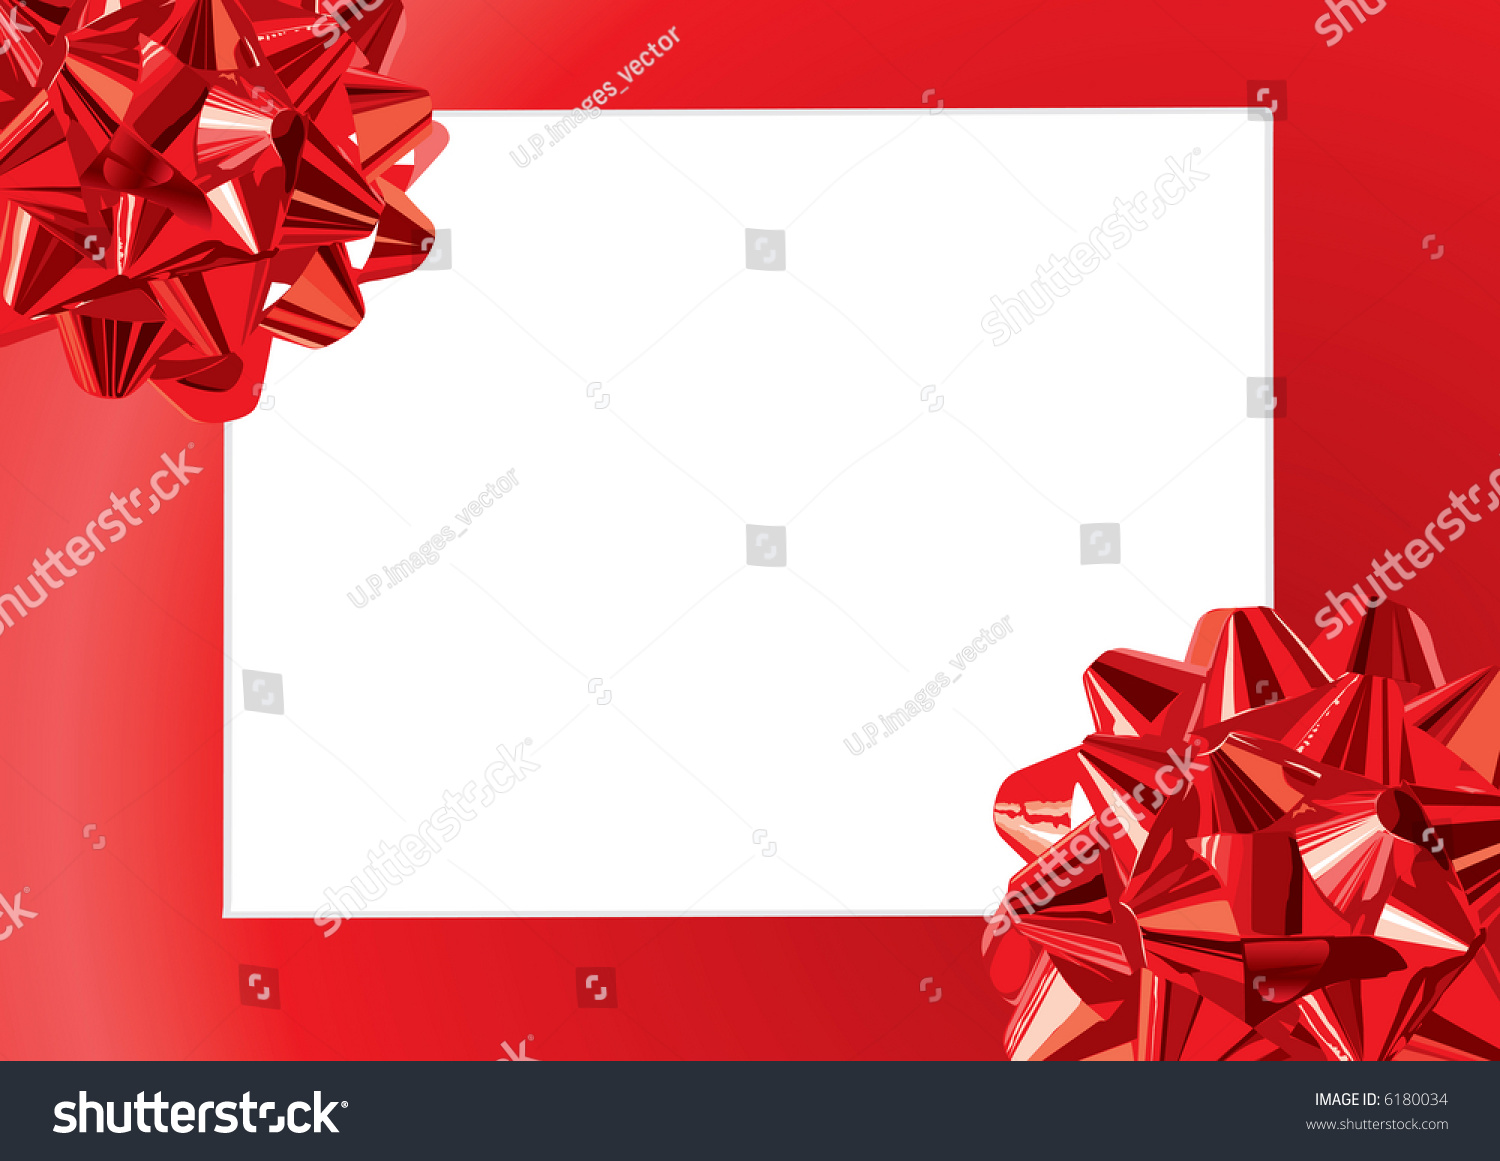 Red gift bows border with clipping path for easy background removing - Gift Bows Frame Also Available Vector Version Of This Image In Our Gallery